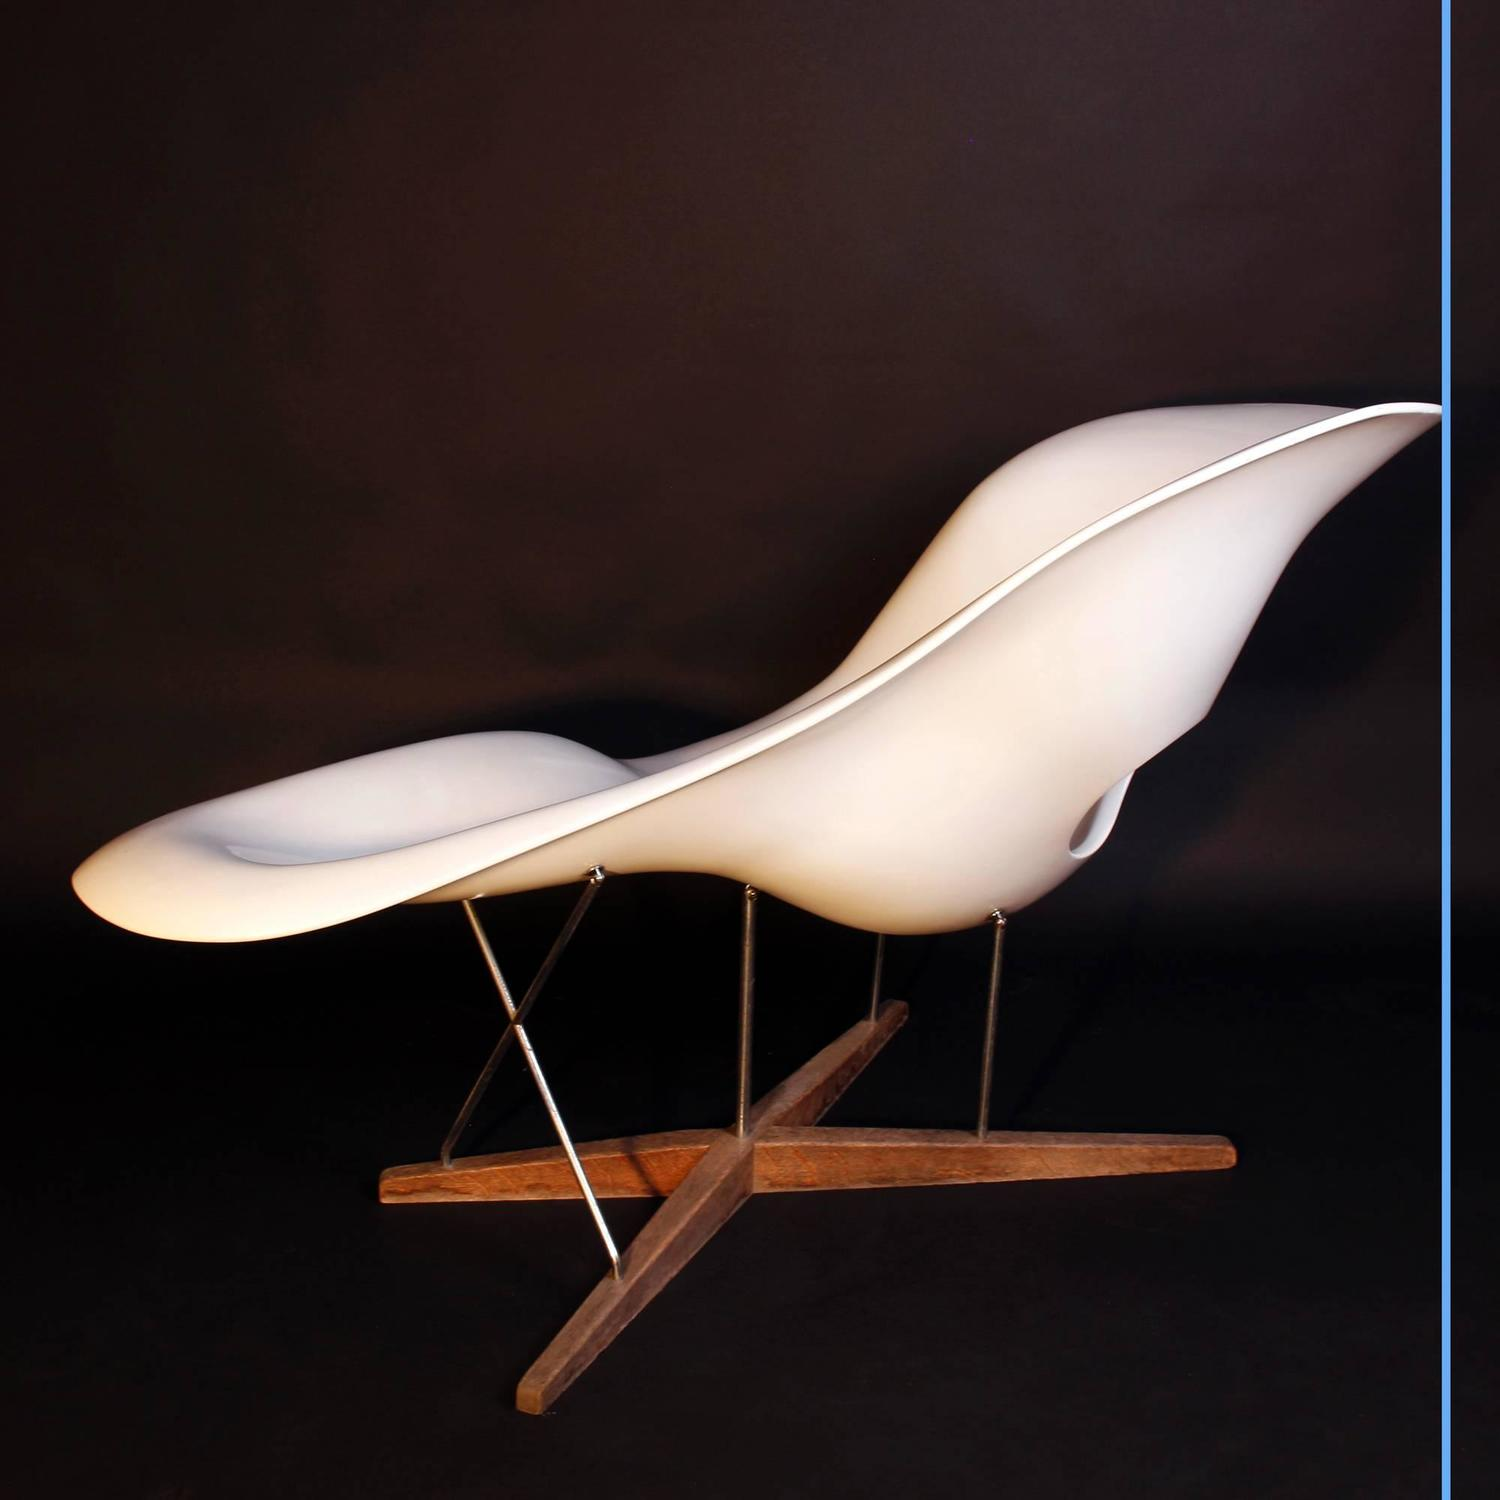 La chaise charles eames chaise longue for sale at 1stdibs for 4 chaises eames